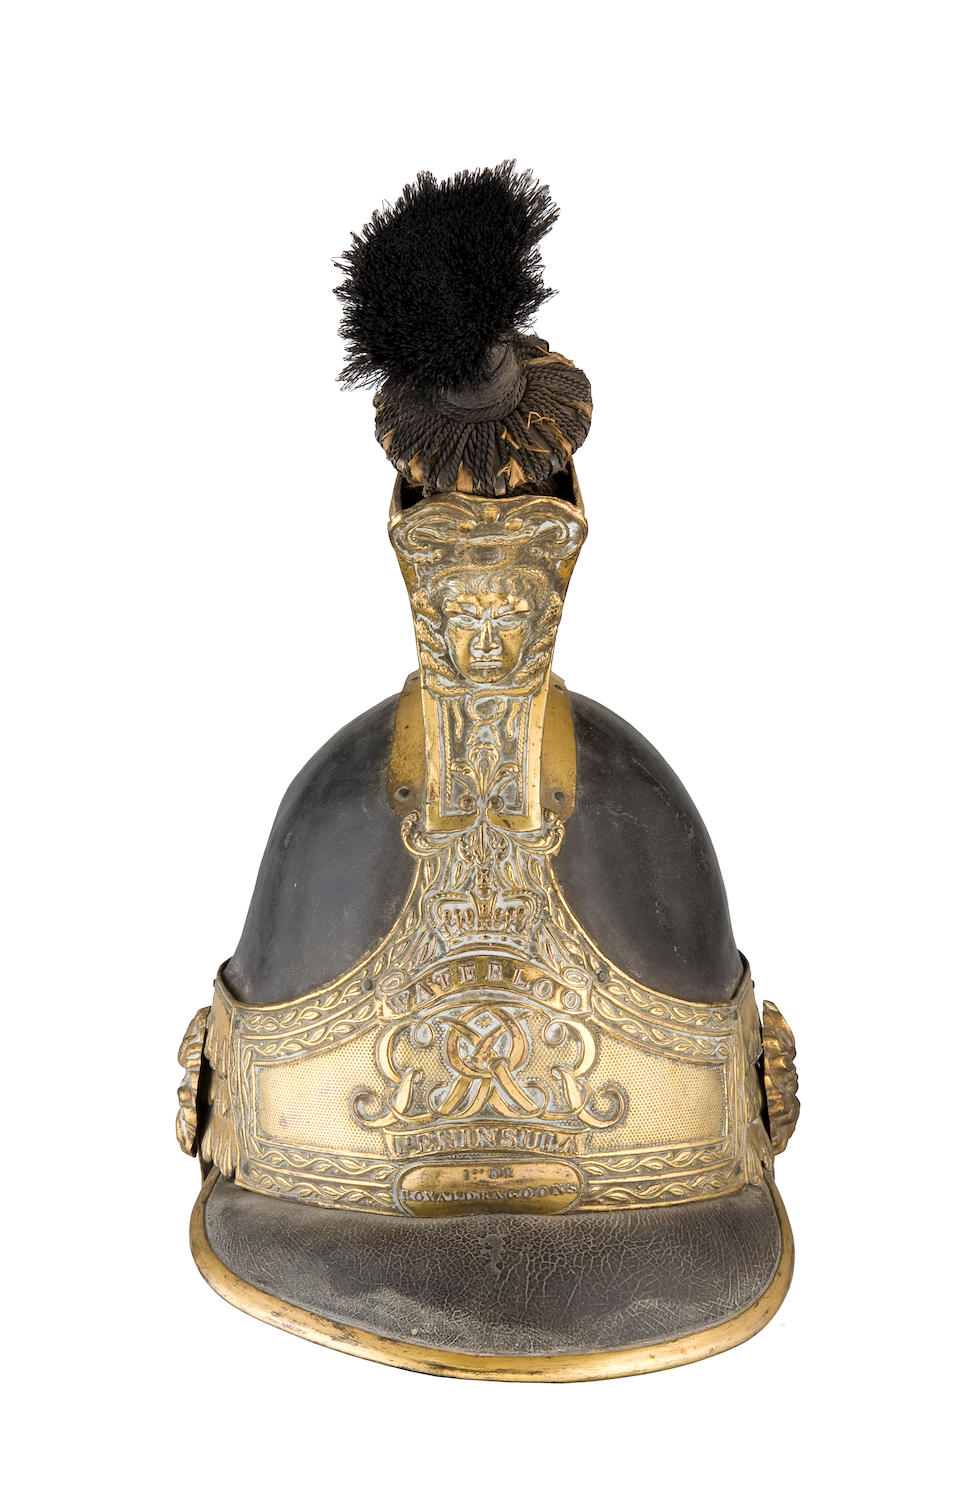 An Extremely Rare Officer's 1812-18 Pattern Helmet Of The 1st. Royal Dragoons